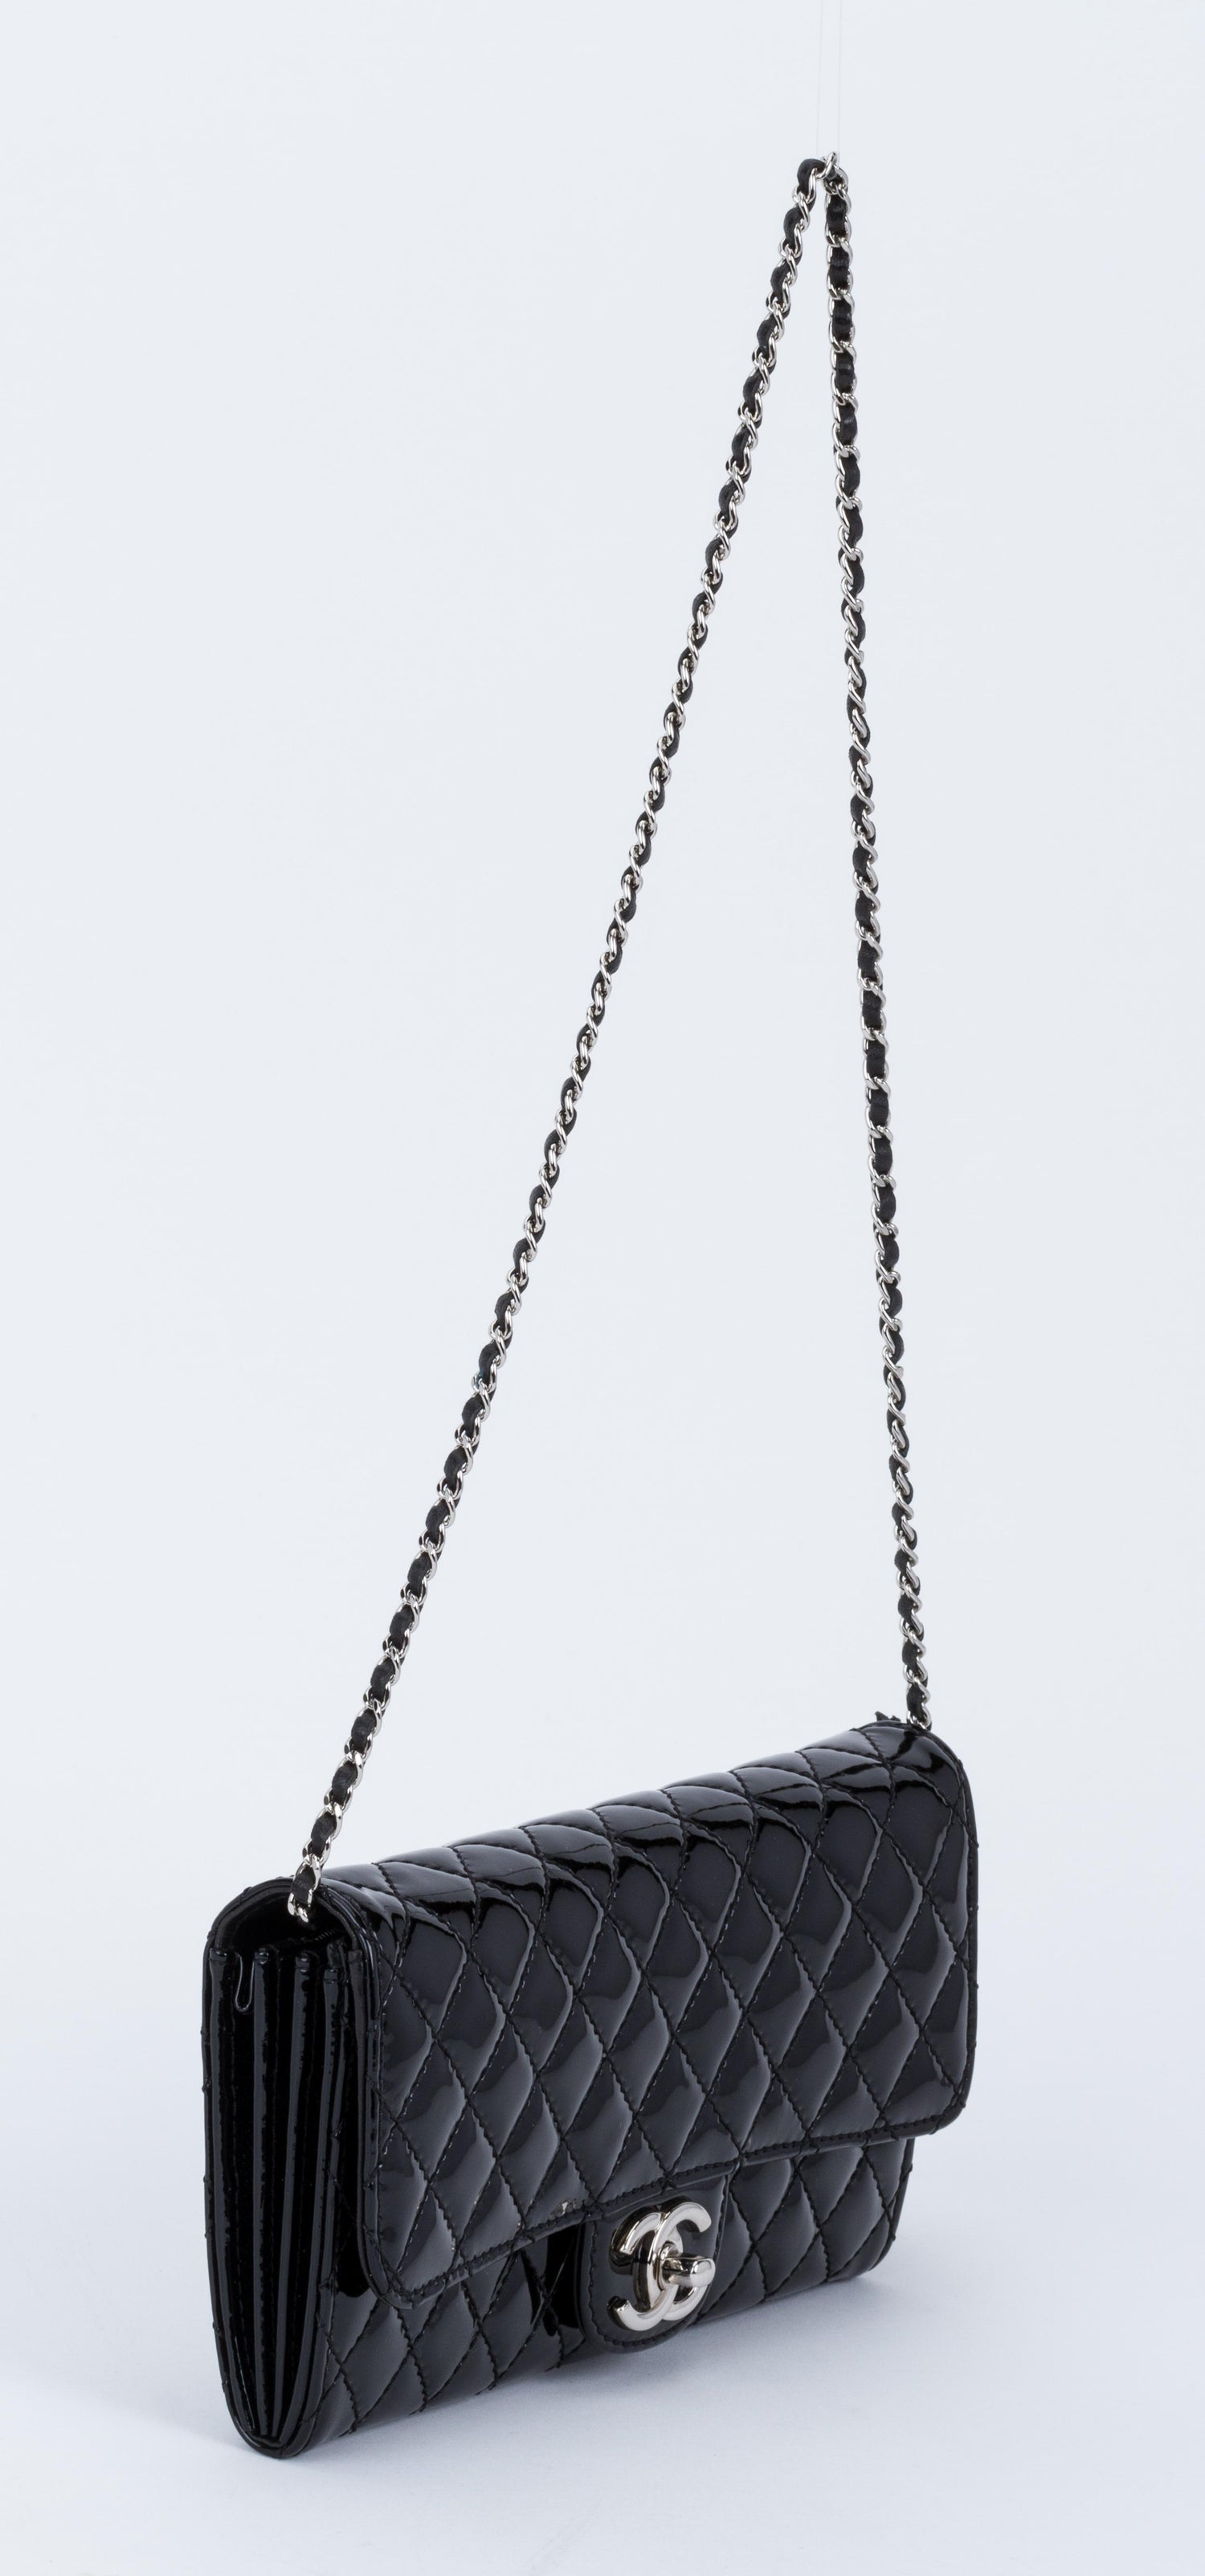 c3fffa12ac7b Chanel Black Patent 2 Way Pouchette Bag For Sale at 1stdibs